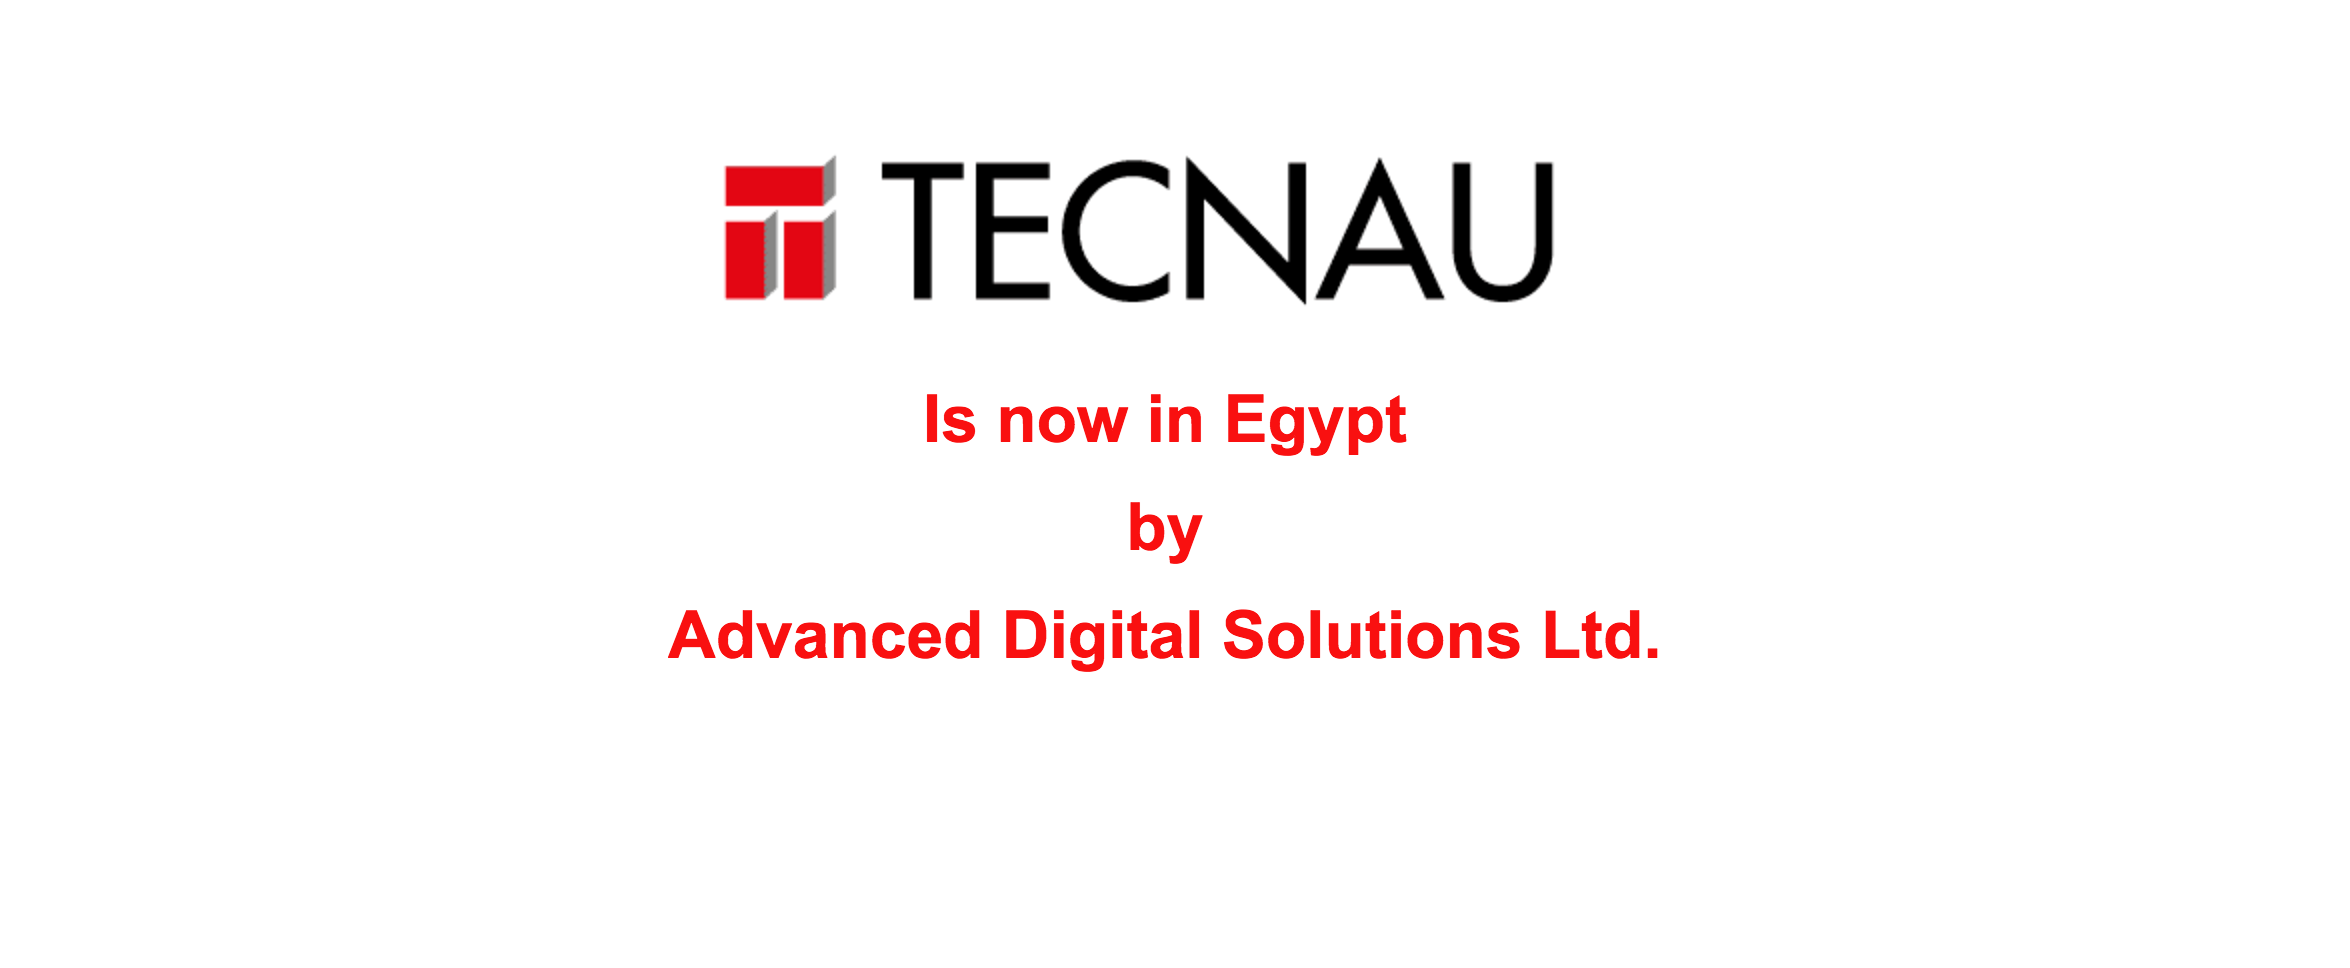 Tecnau is now in Egypt.